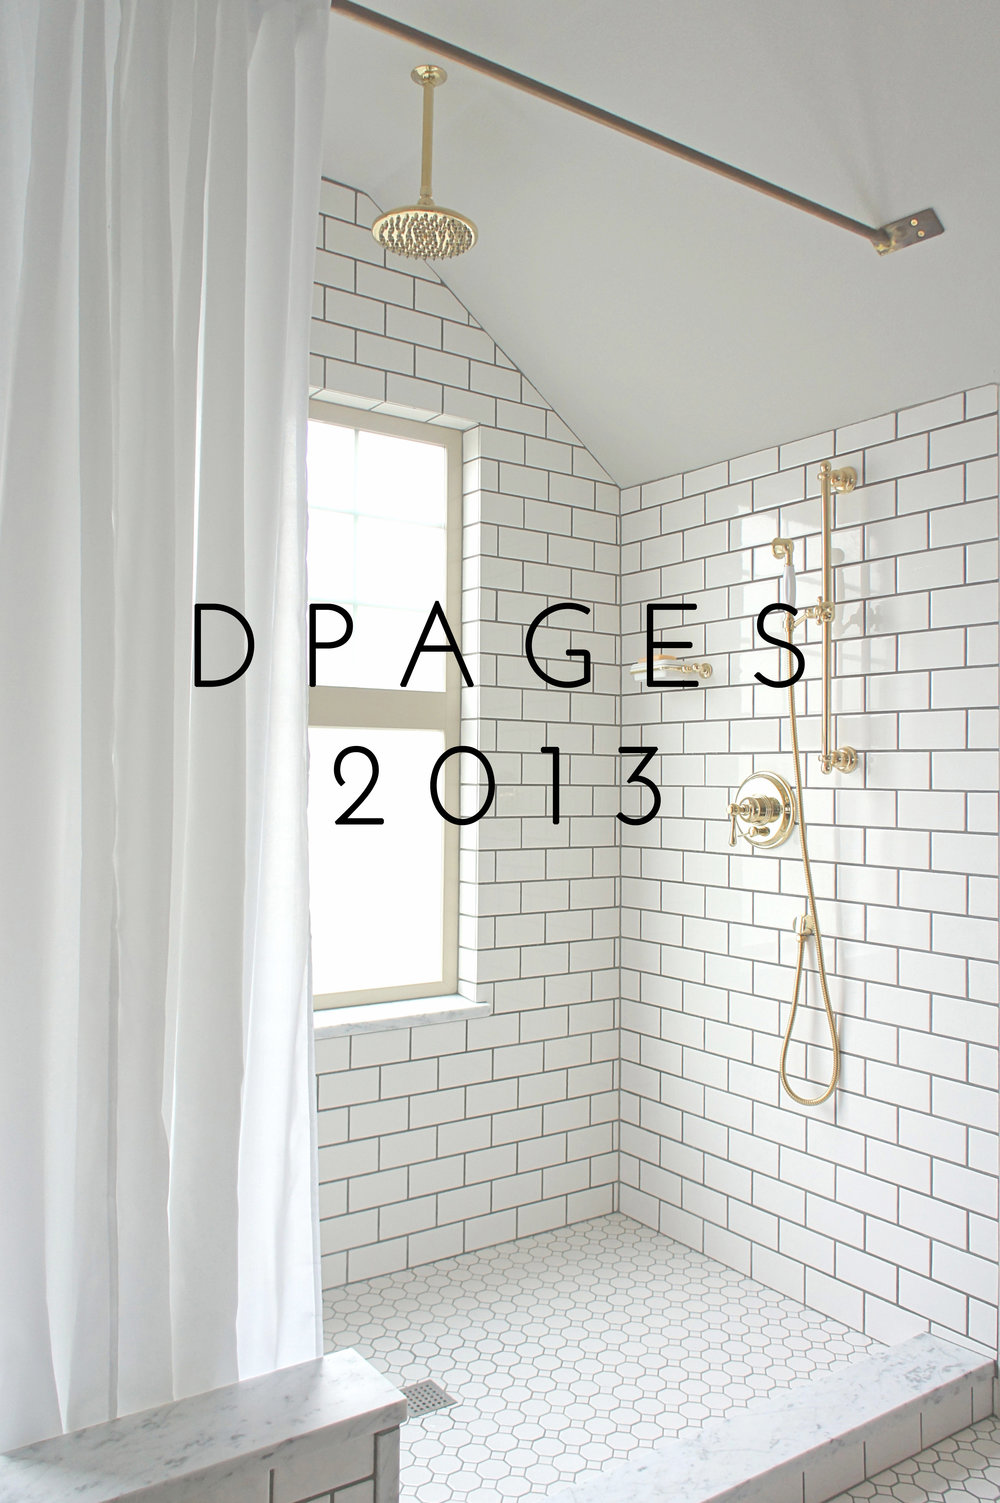 Kaemingk Design DPages 2013